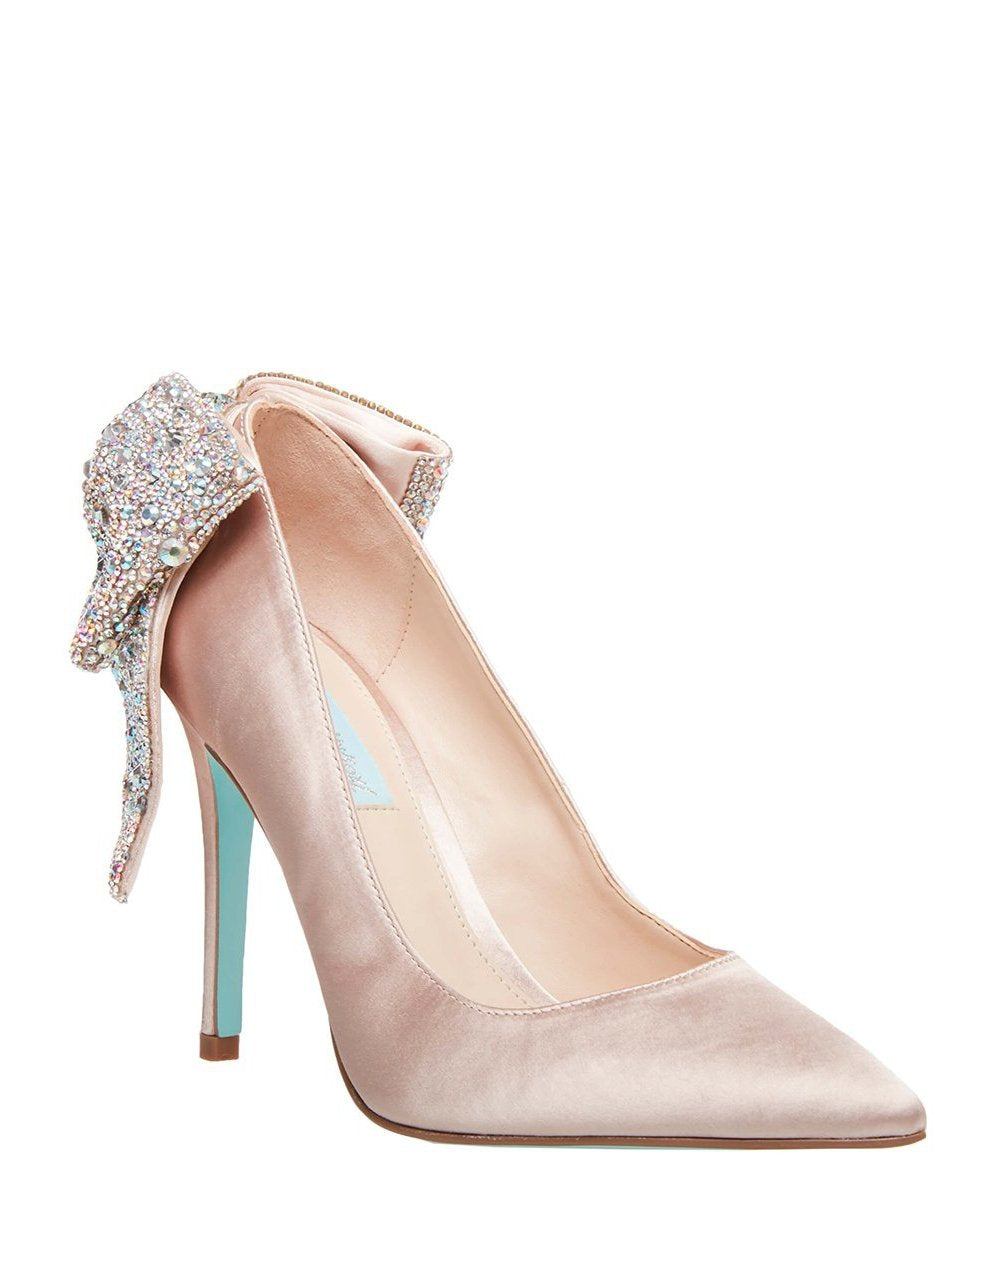 SB-BRYN NUDE SATIN - SHOES - Betsey Johnson